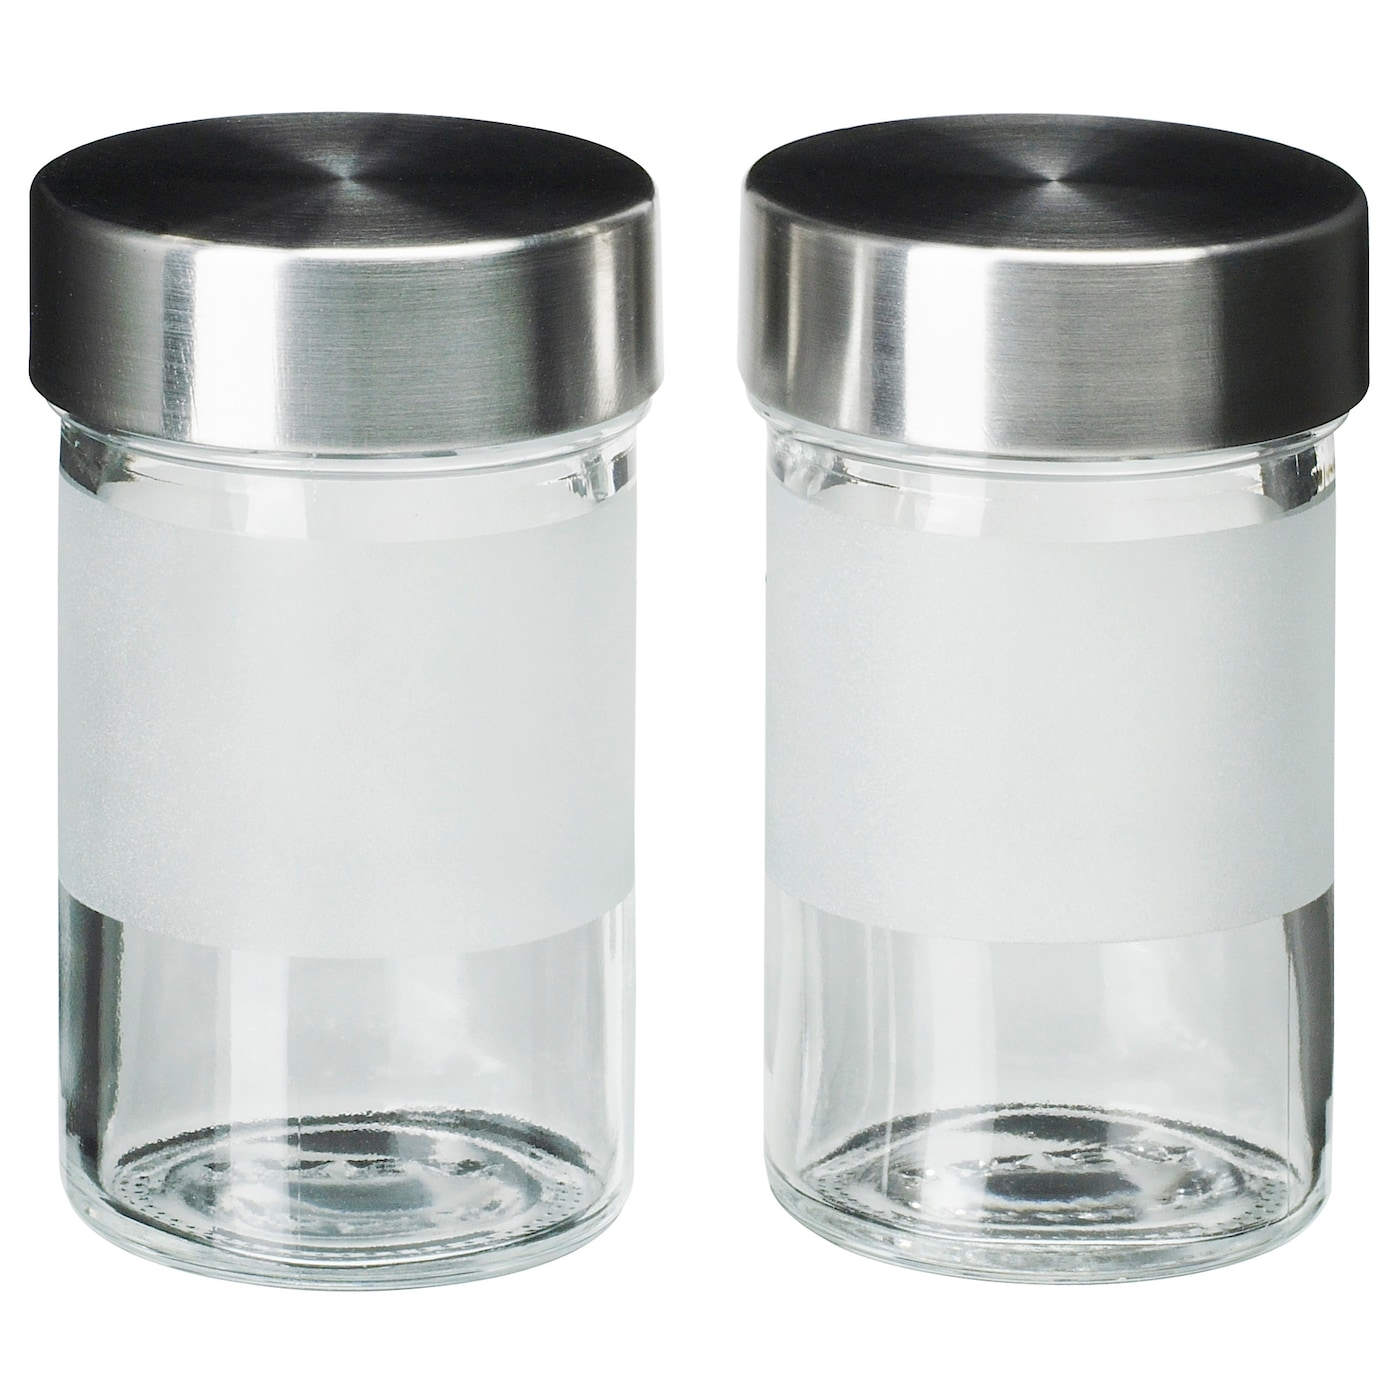 droppar spice jar frosted glass stainless steel 9 cl ikea. Black Bedroom Furniture Sets. Home Design Ideas